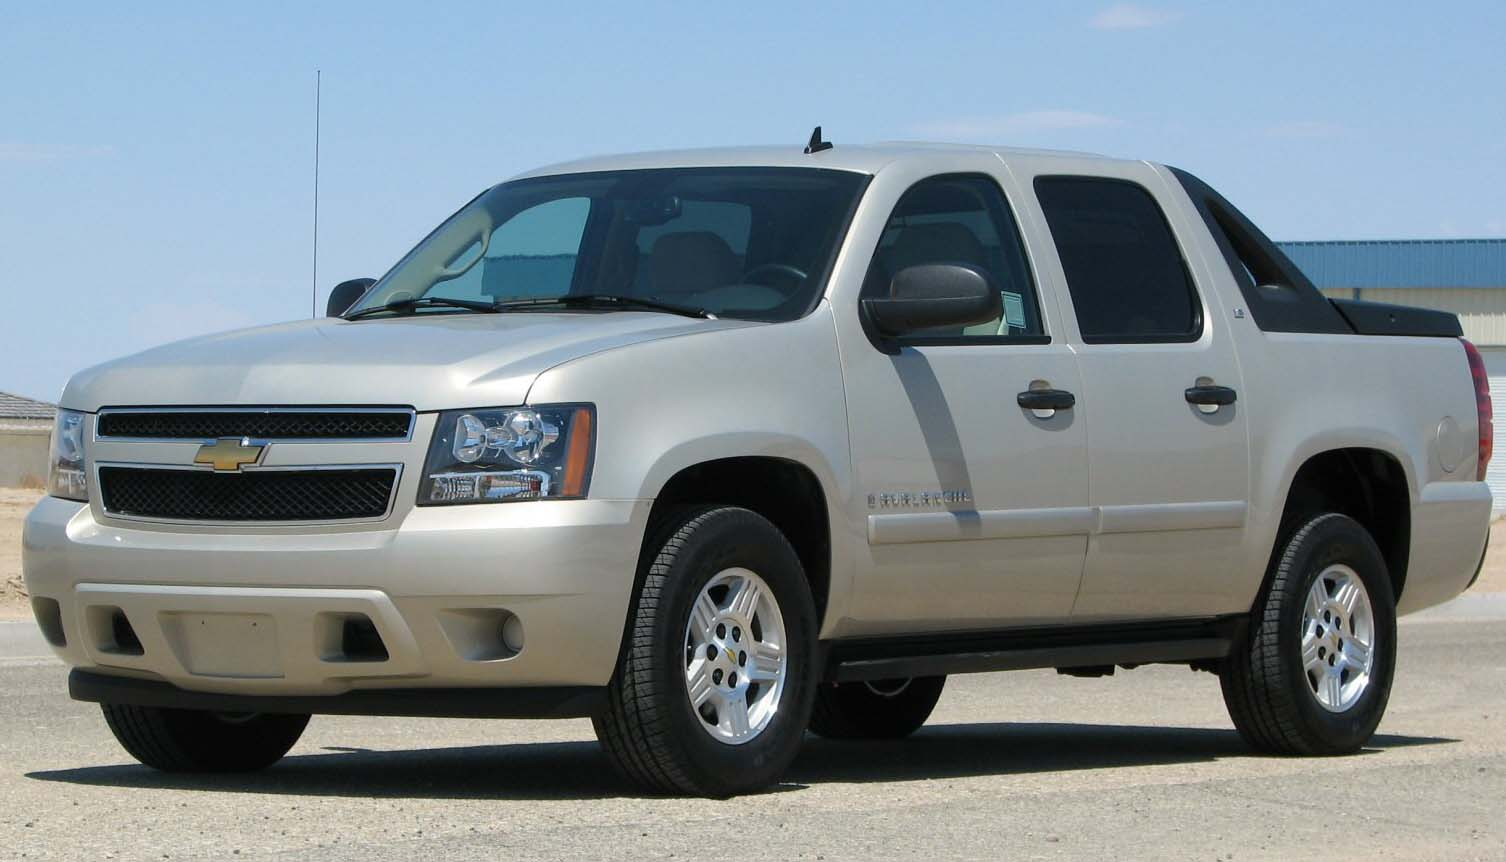 2016 Chevy Avalanche >> Chevrolet Avalanche Wikipedia